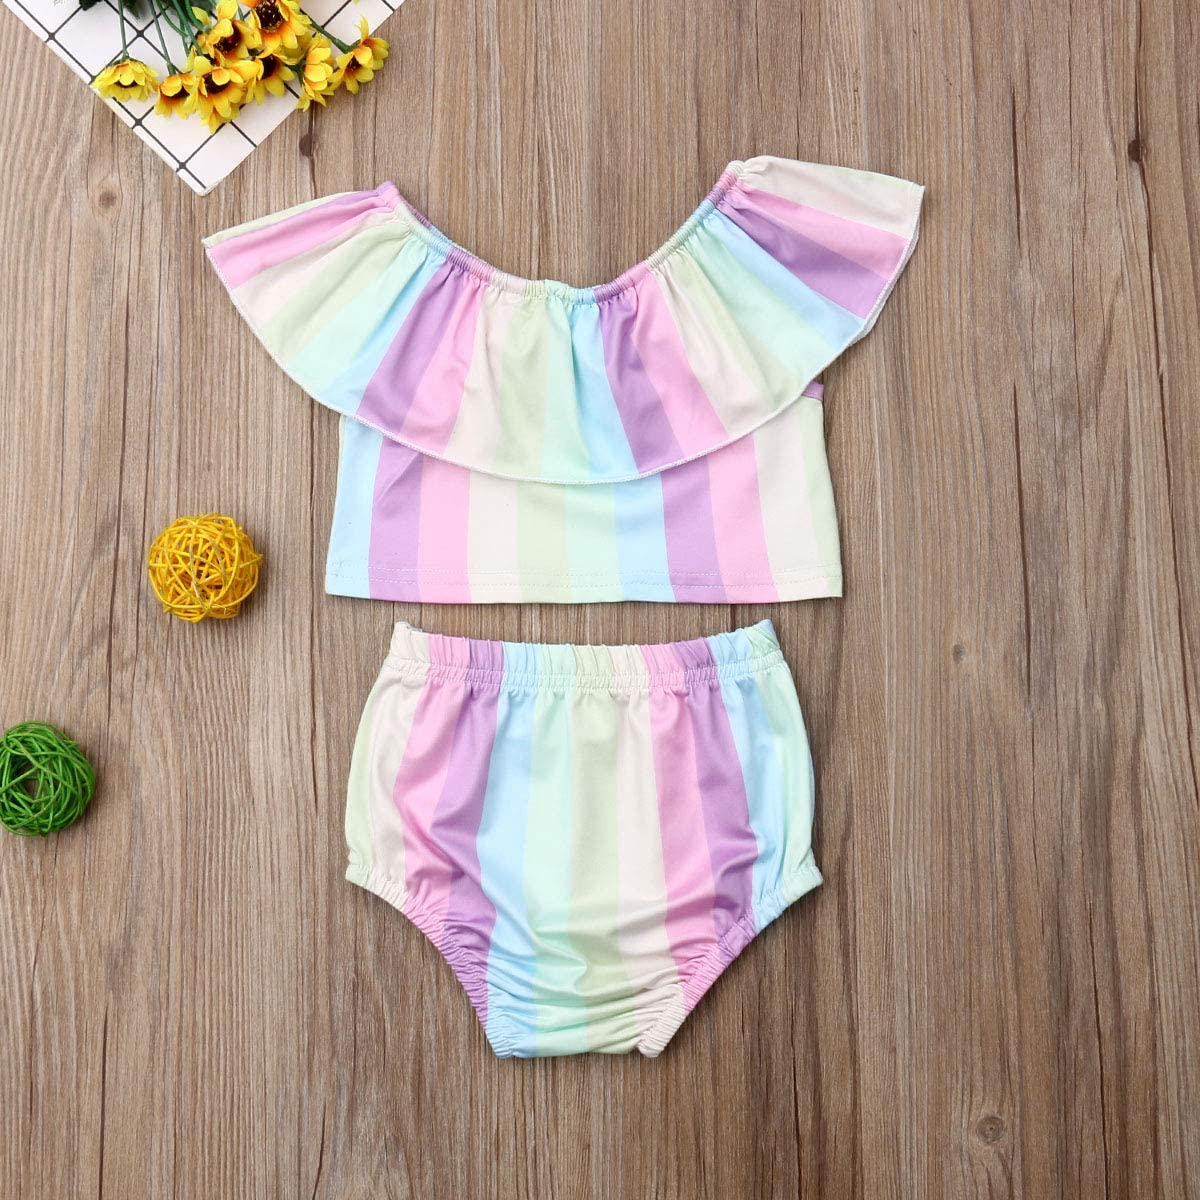 2Pcs Newborn Baby Girl Summer Clothes Set Sleeveless Tube Tops+Floral Shorts Pants Outfit